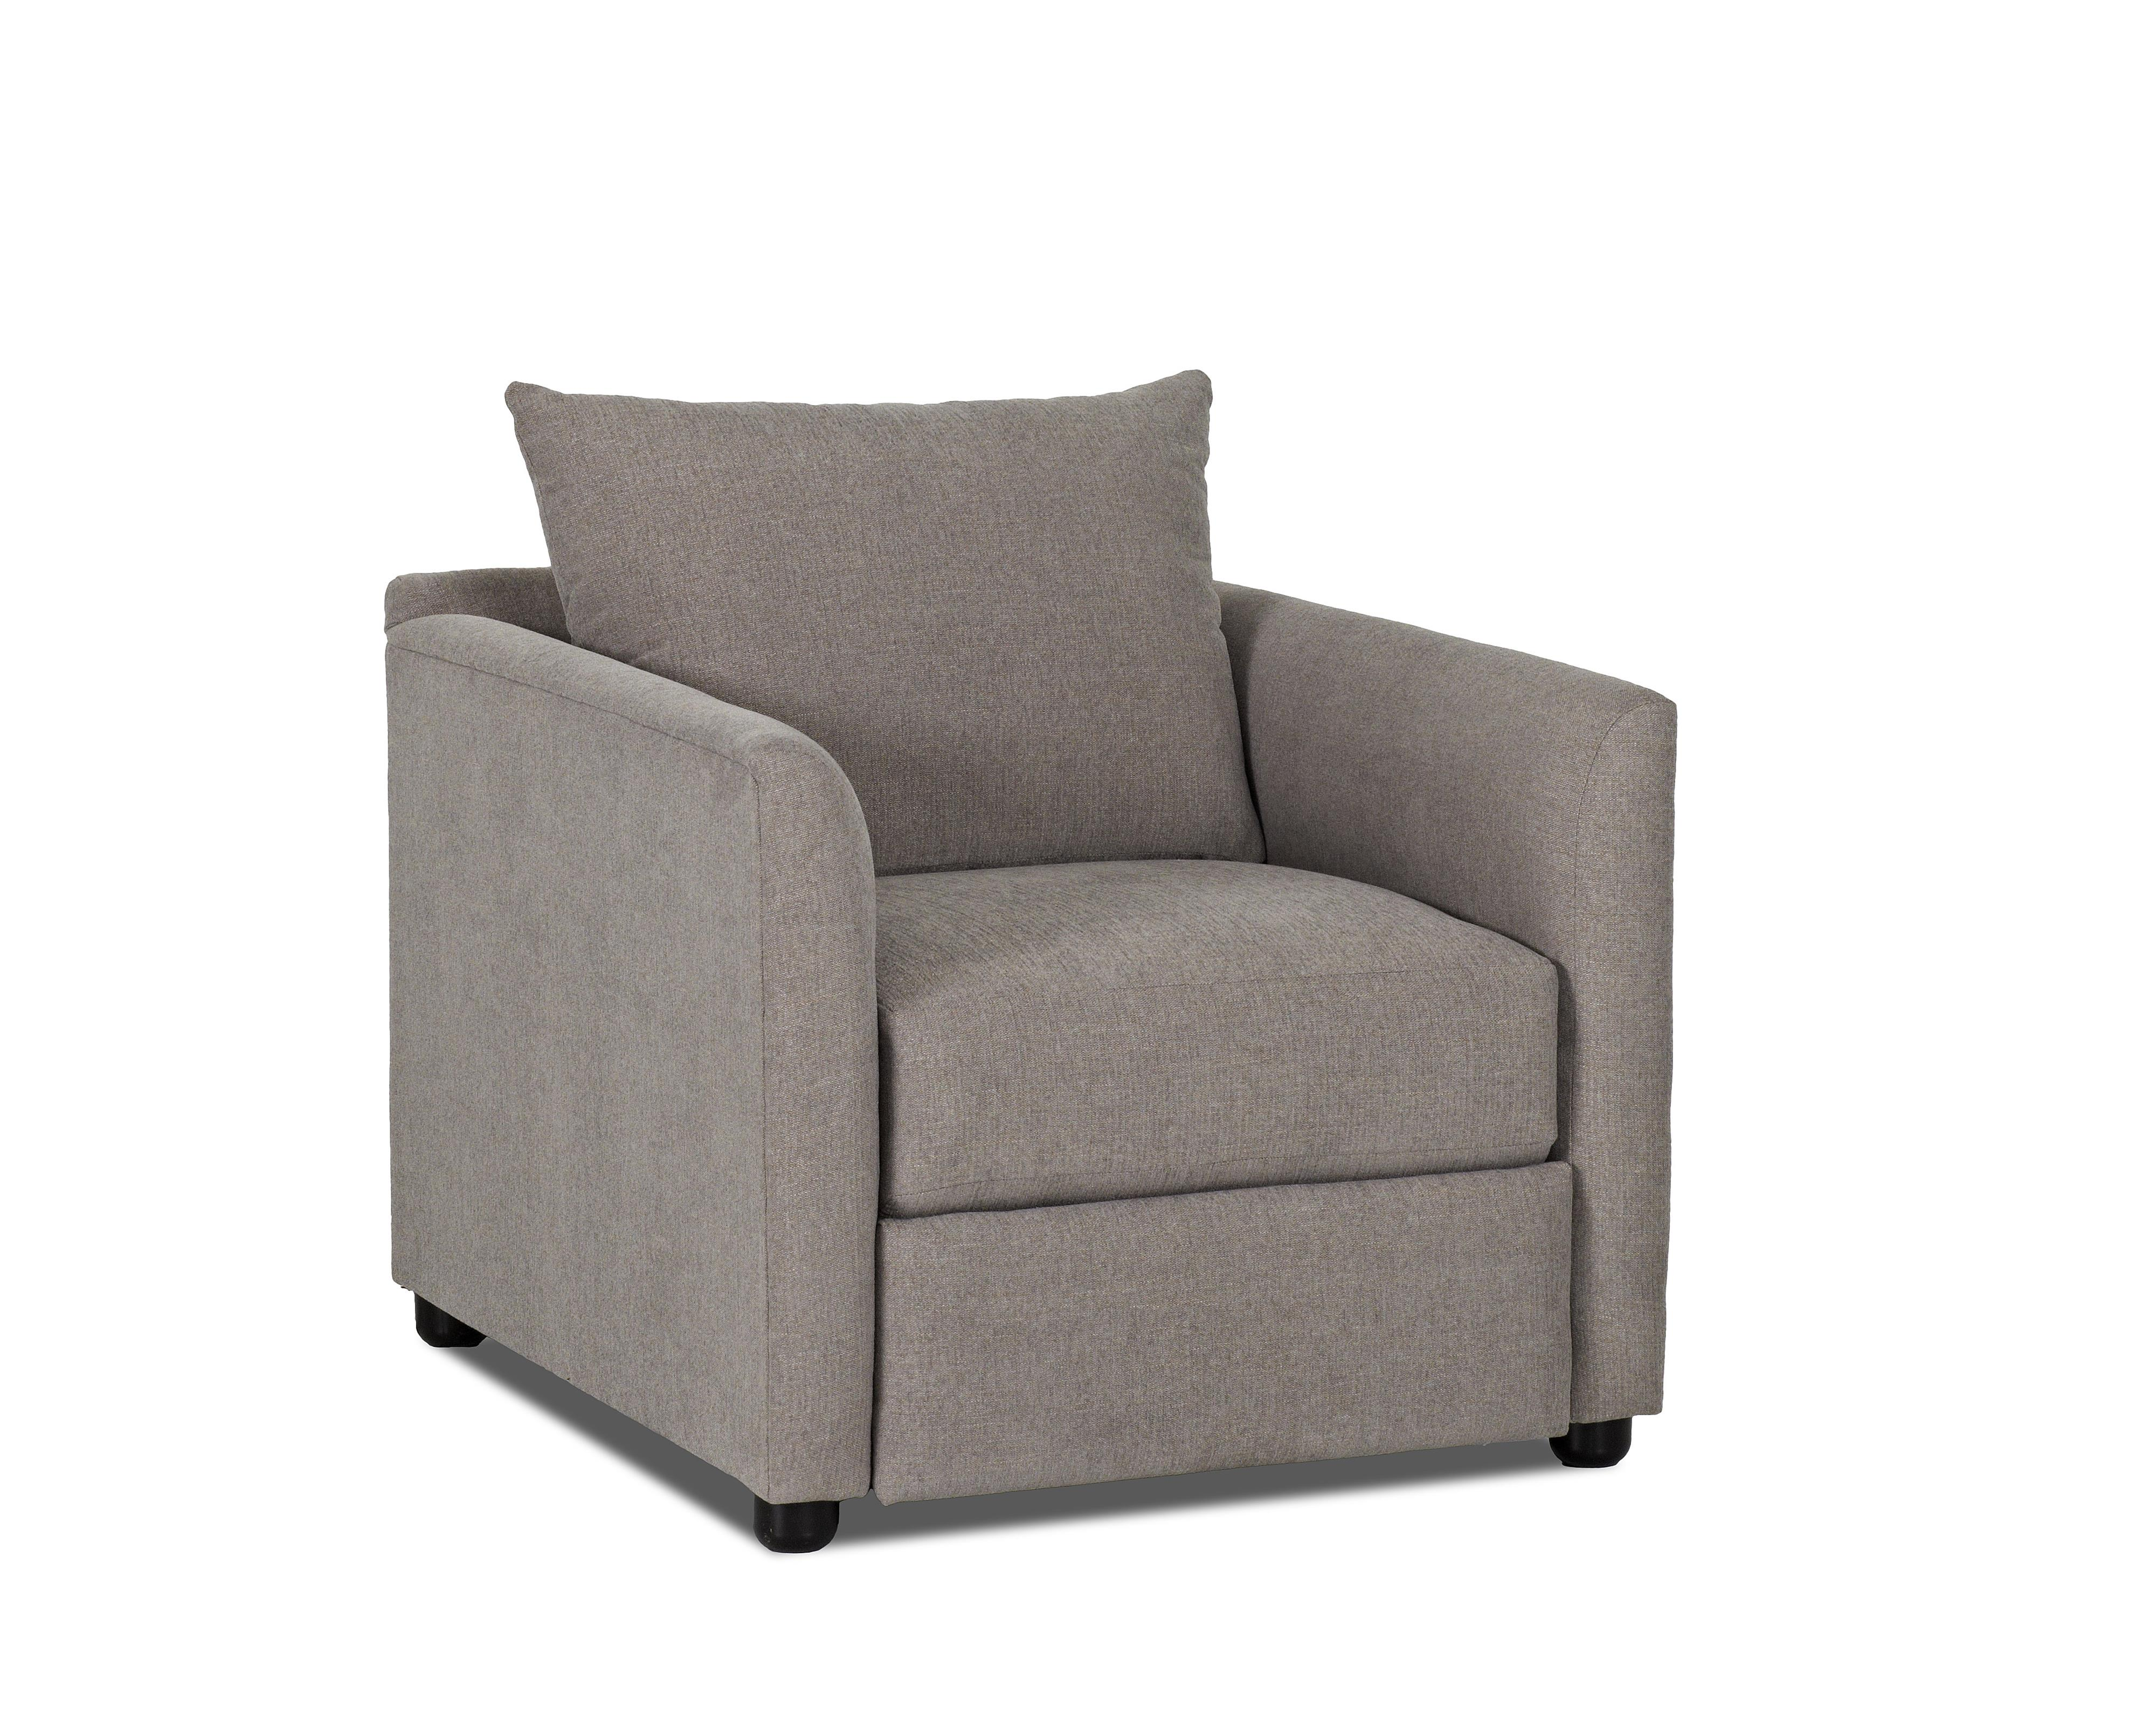 Atlanta Power Reclining Chair by Klaussner at Value City Furniture